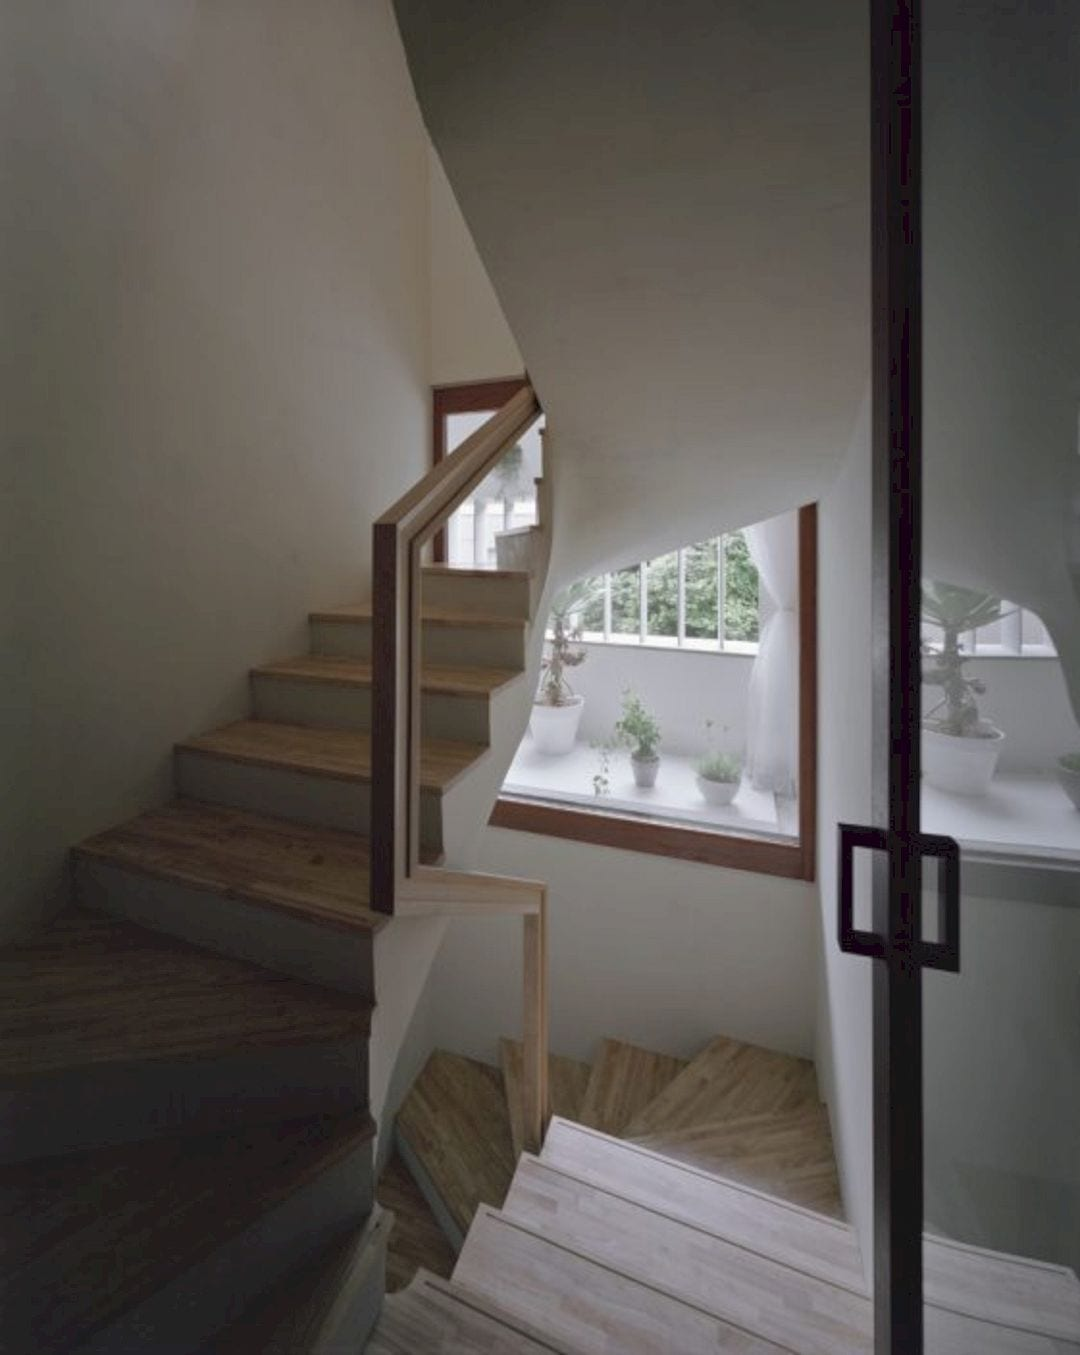 M House By Jun Aoki & Associates 6